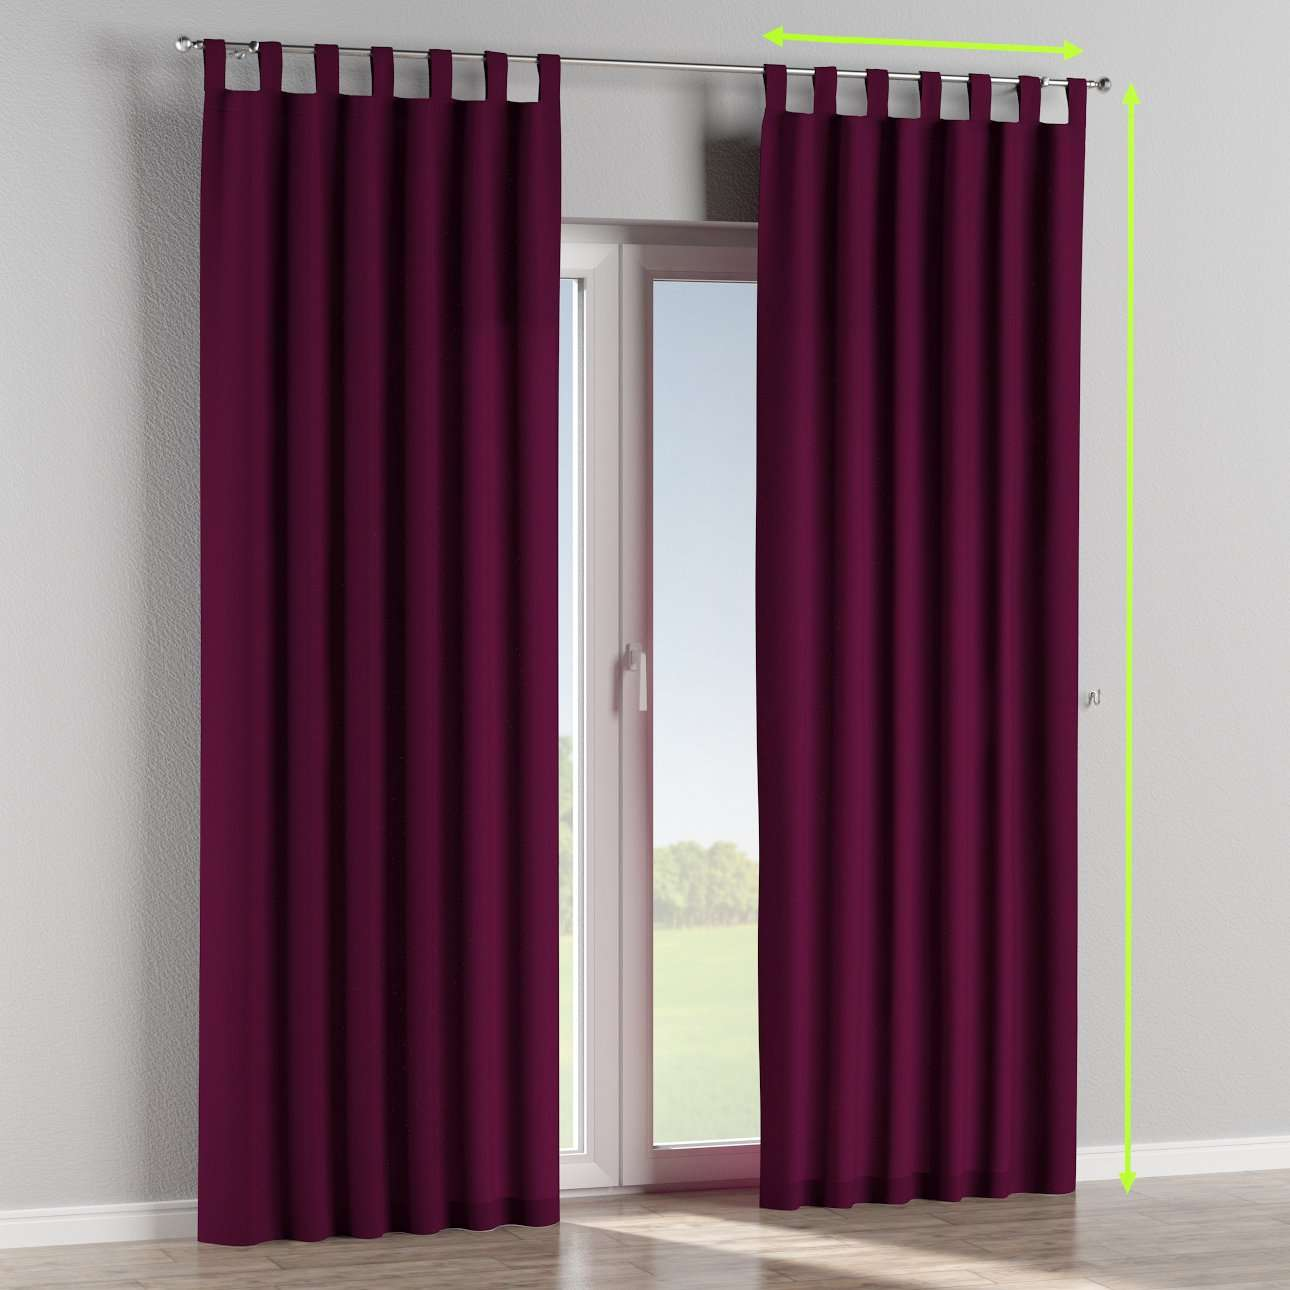 Tab top lined curtains in collection Chenille, fabric: 702-12